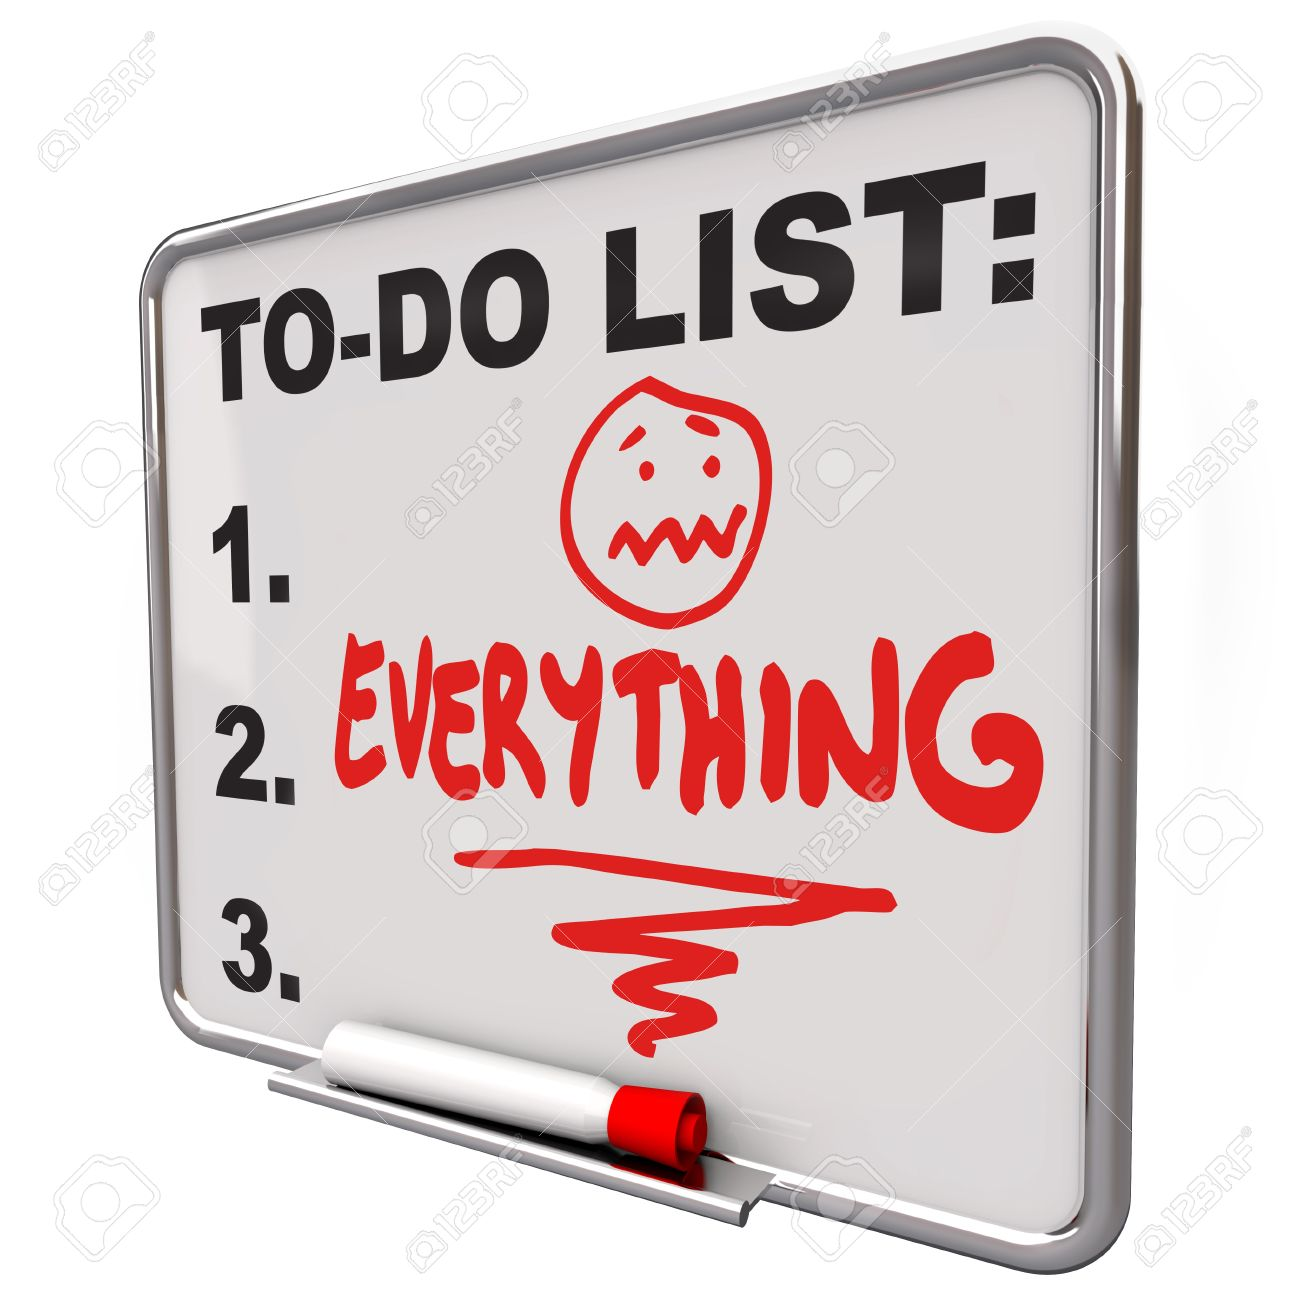 too much work stock photos pictures royalty too much work too much work the word everything on a to do list on a dry